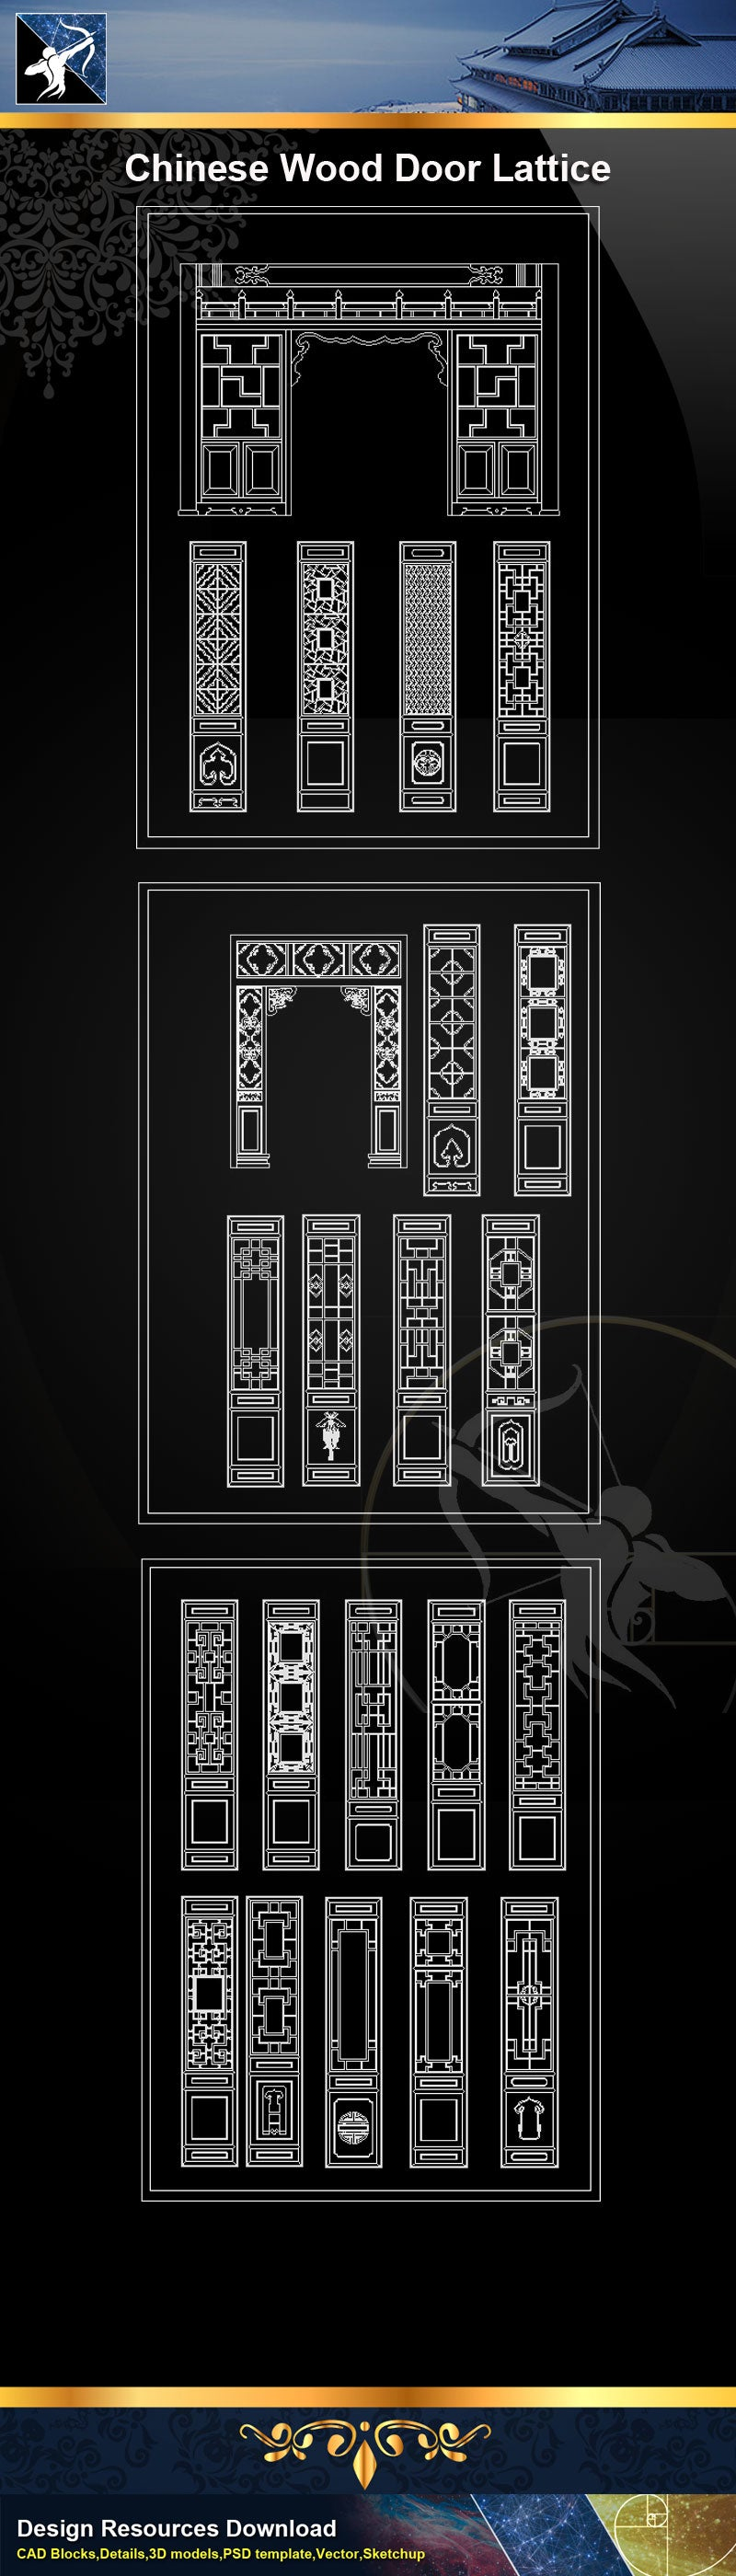 Antique Chinese DoorChinese Wood ScreenCarved Wood DoorCarved Wooden Chinese Door & Chinese Door Lattice CAD Blocks? u2013 Free Graphic Design Templates ...